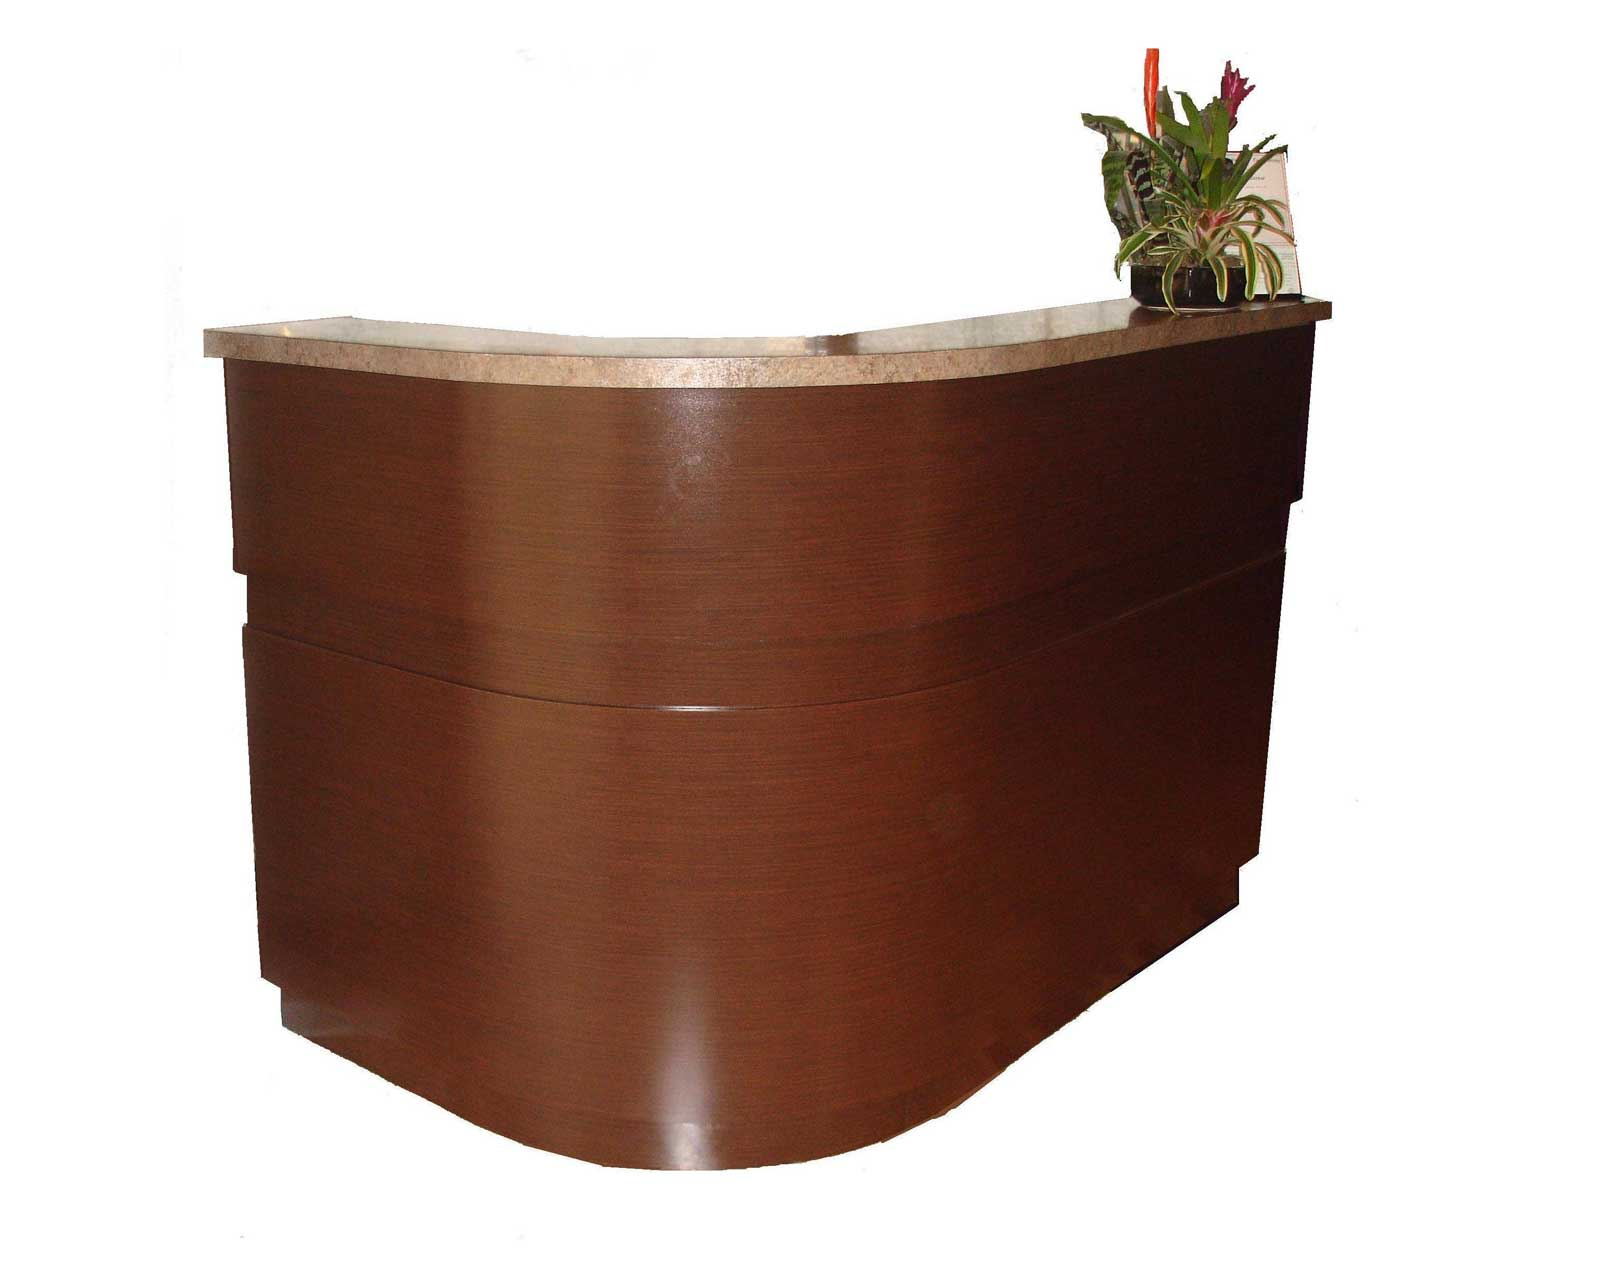 used L-Shaped reception desk